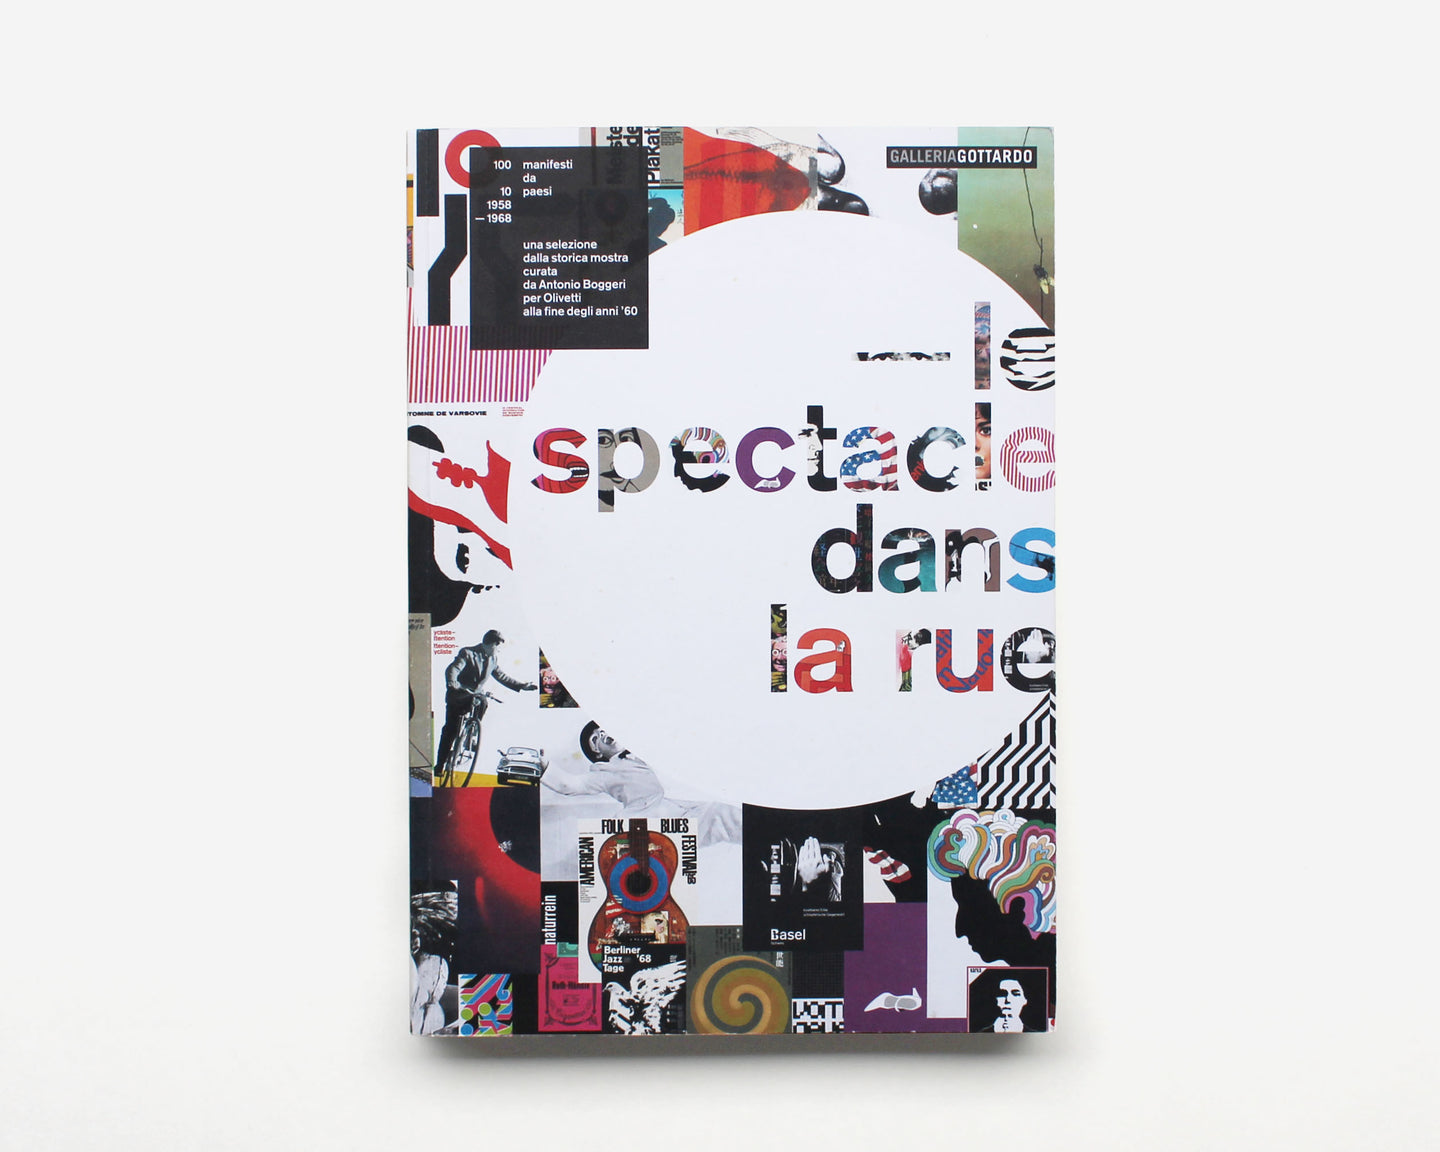 Le spectacle dans la rue: 100 posters from 10 countries 1958–1968 [Antonio Boggeri]